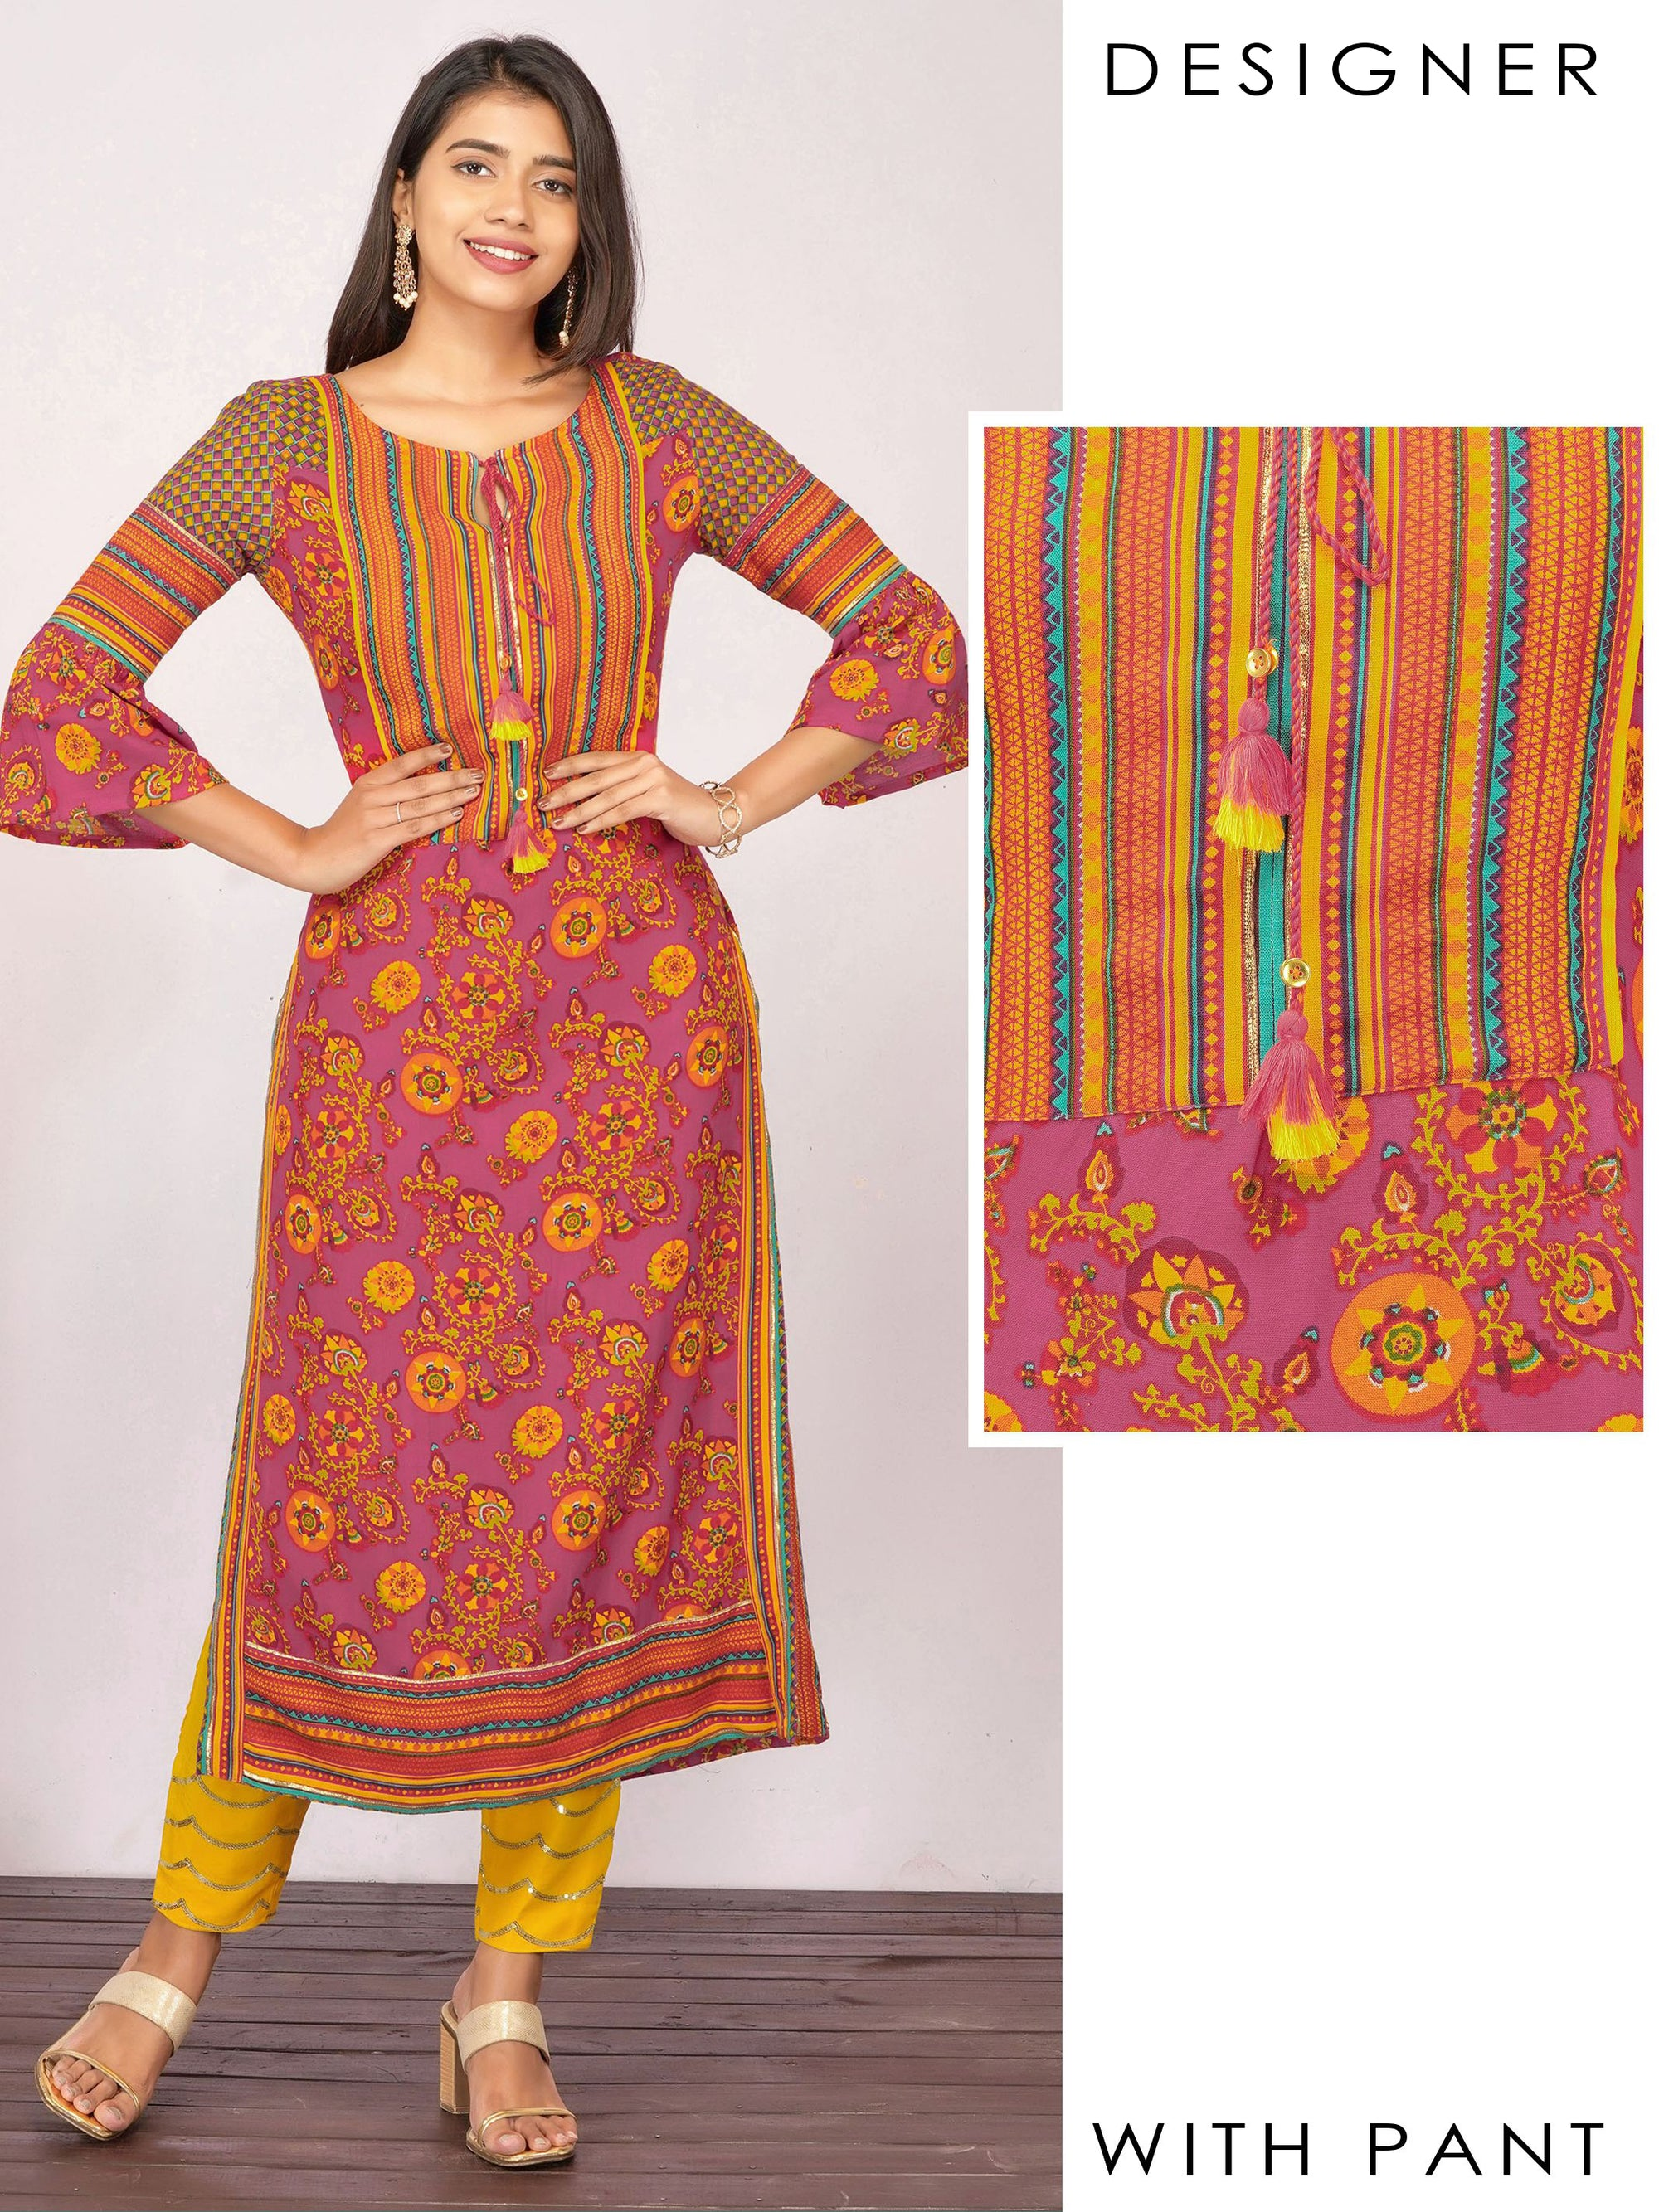 Vibrant Floral Printed Kurti & Sequined Pant Set